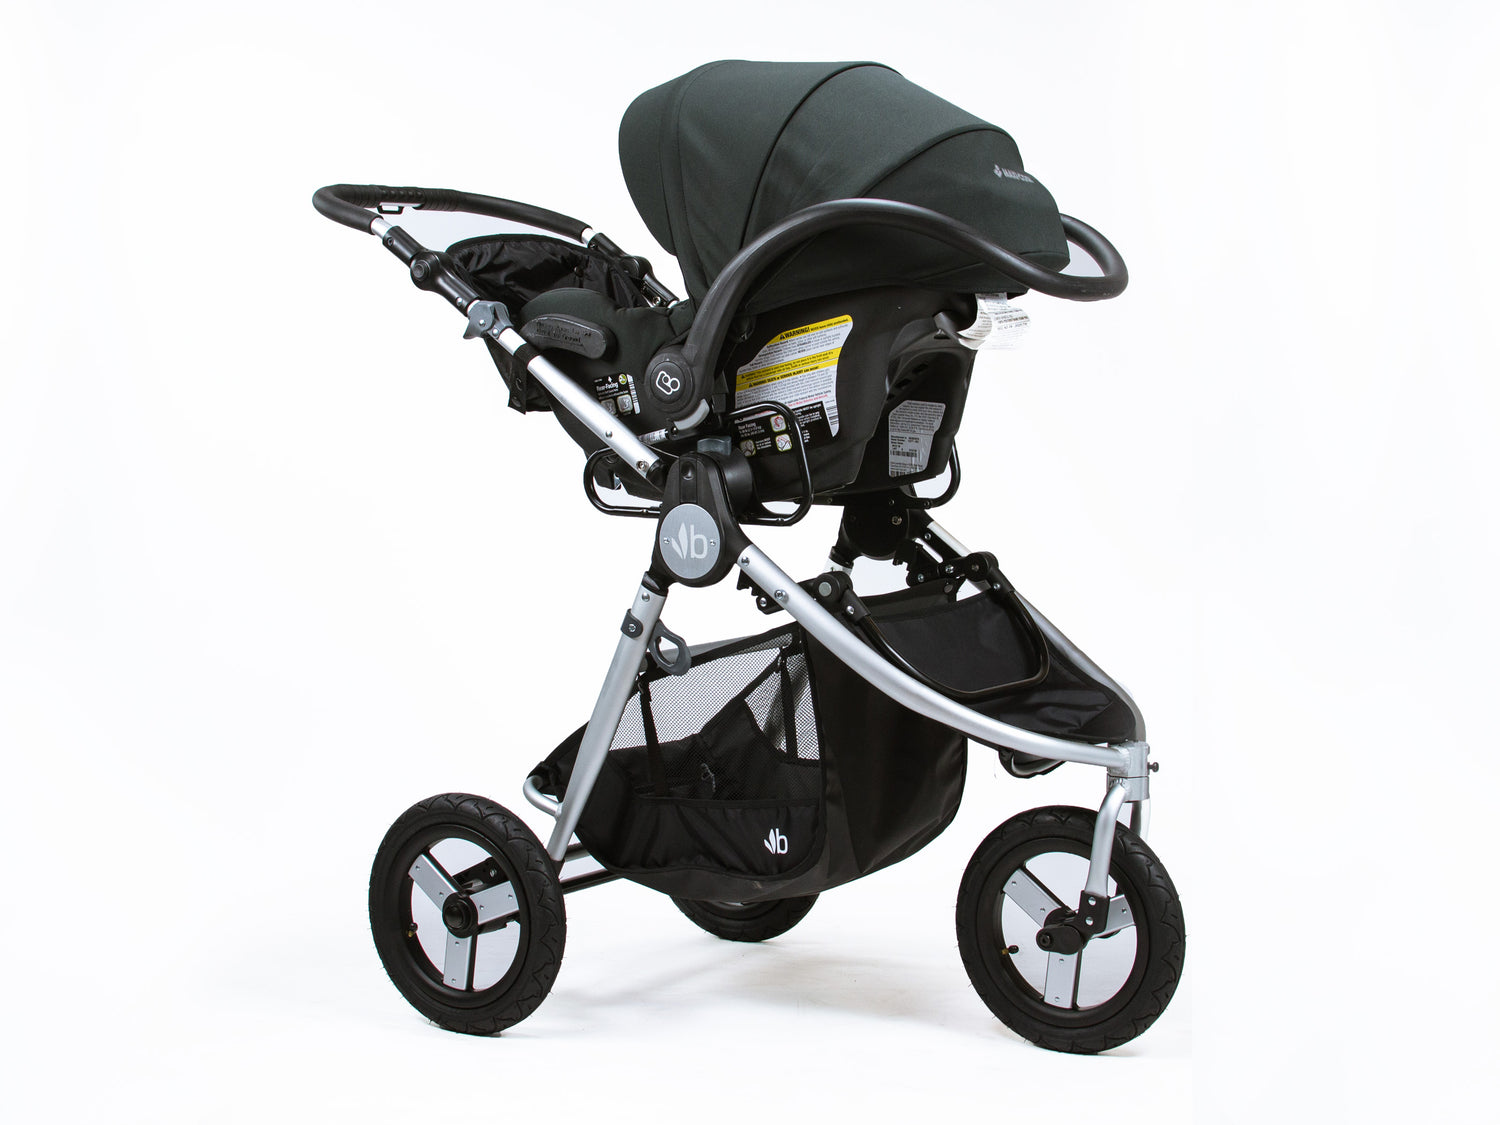 Bumbleride Graco Chicco Car Seat Adapter On Indie Stroller Canada